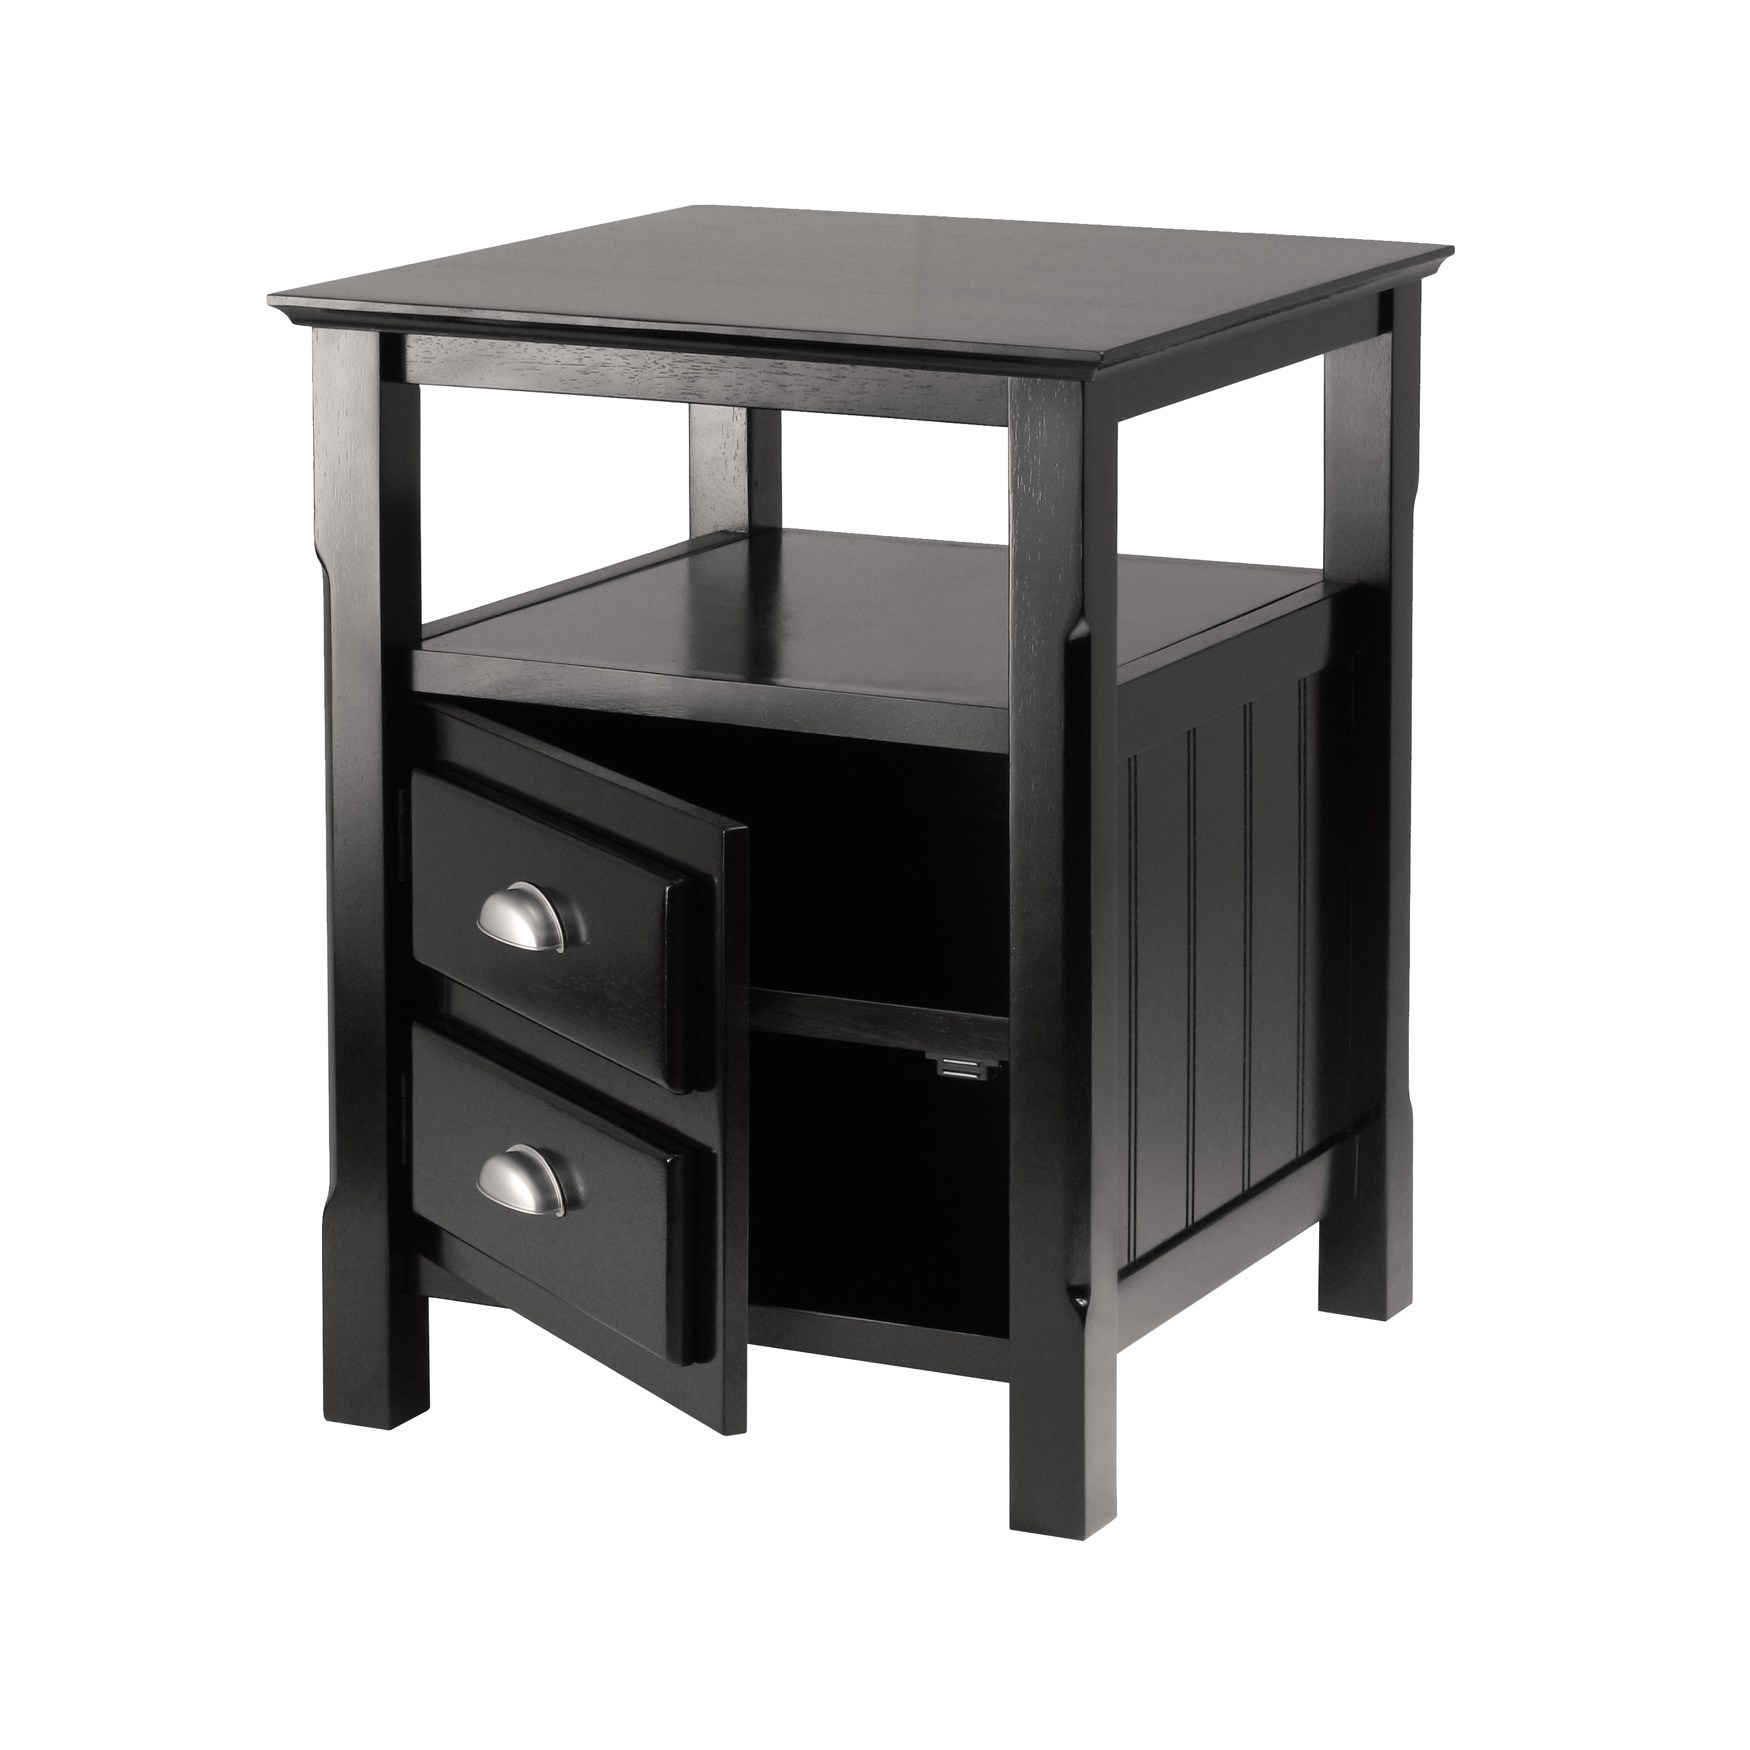 winsome timber open shelf night stand with drawer free wooden ava accent table black finish shipping today clearance couches inch wide console white garden furniture sets target